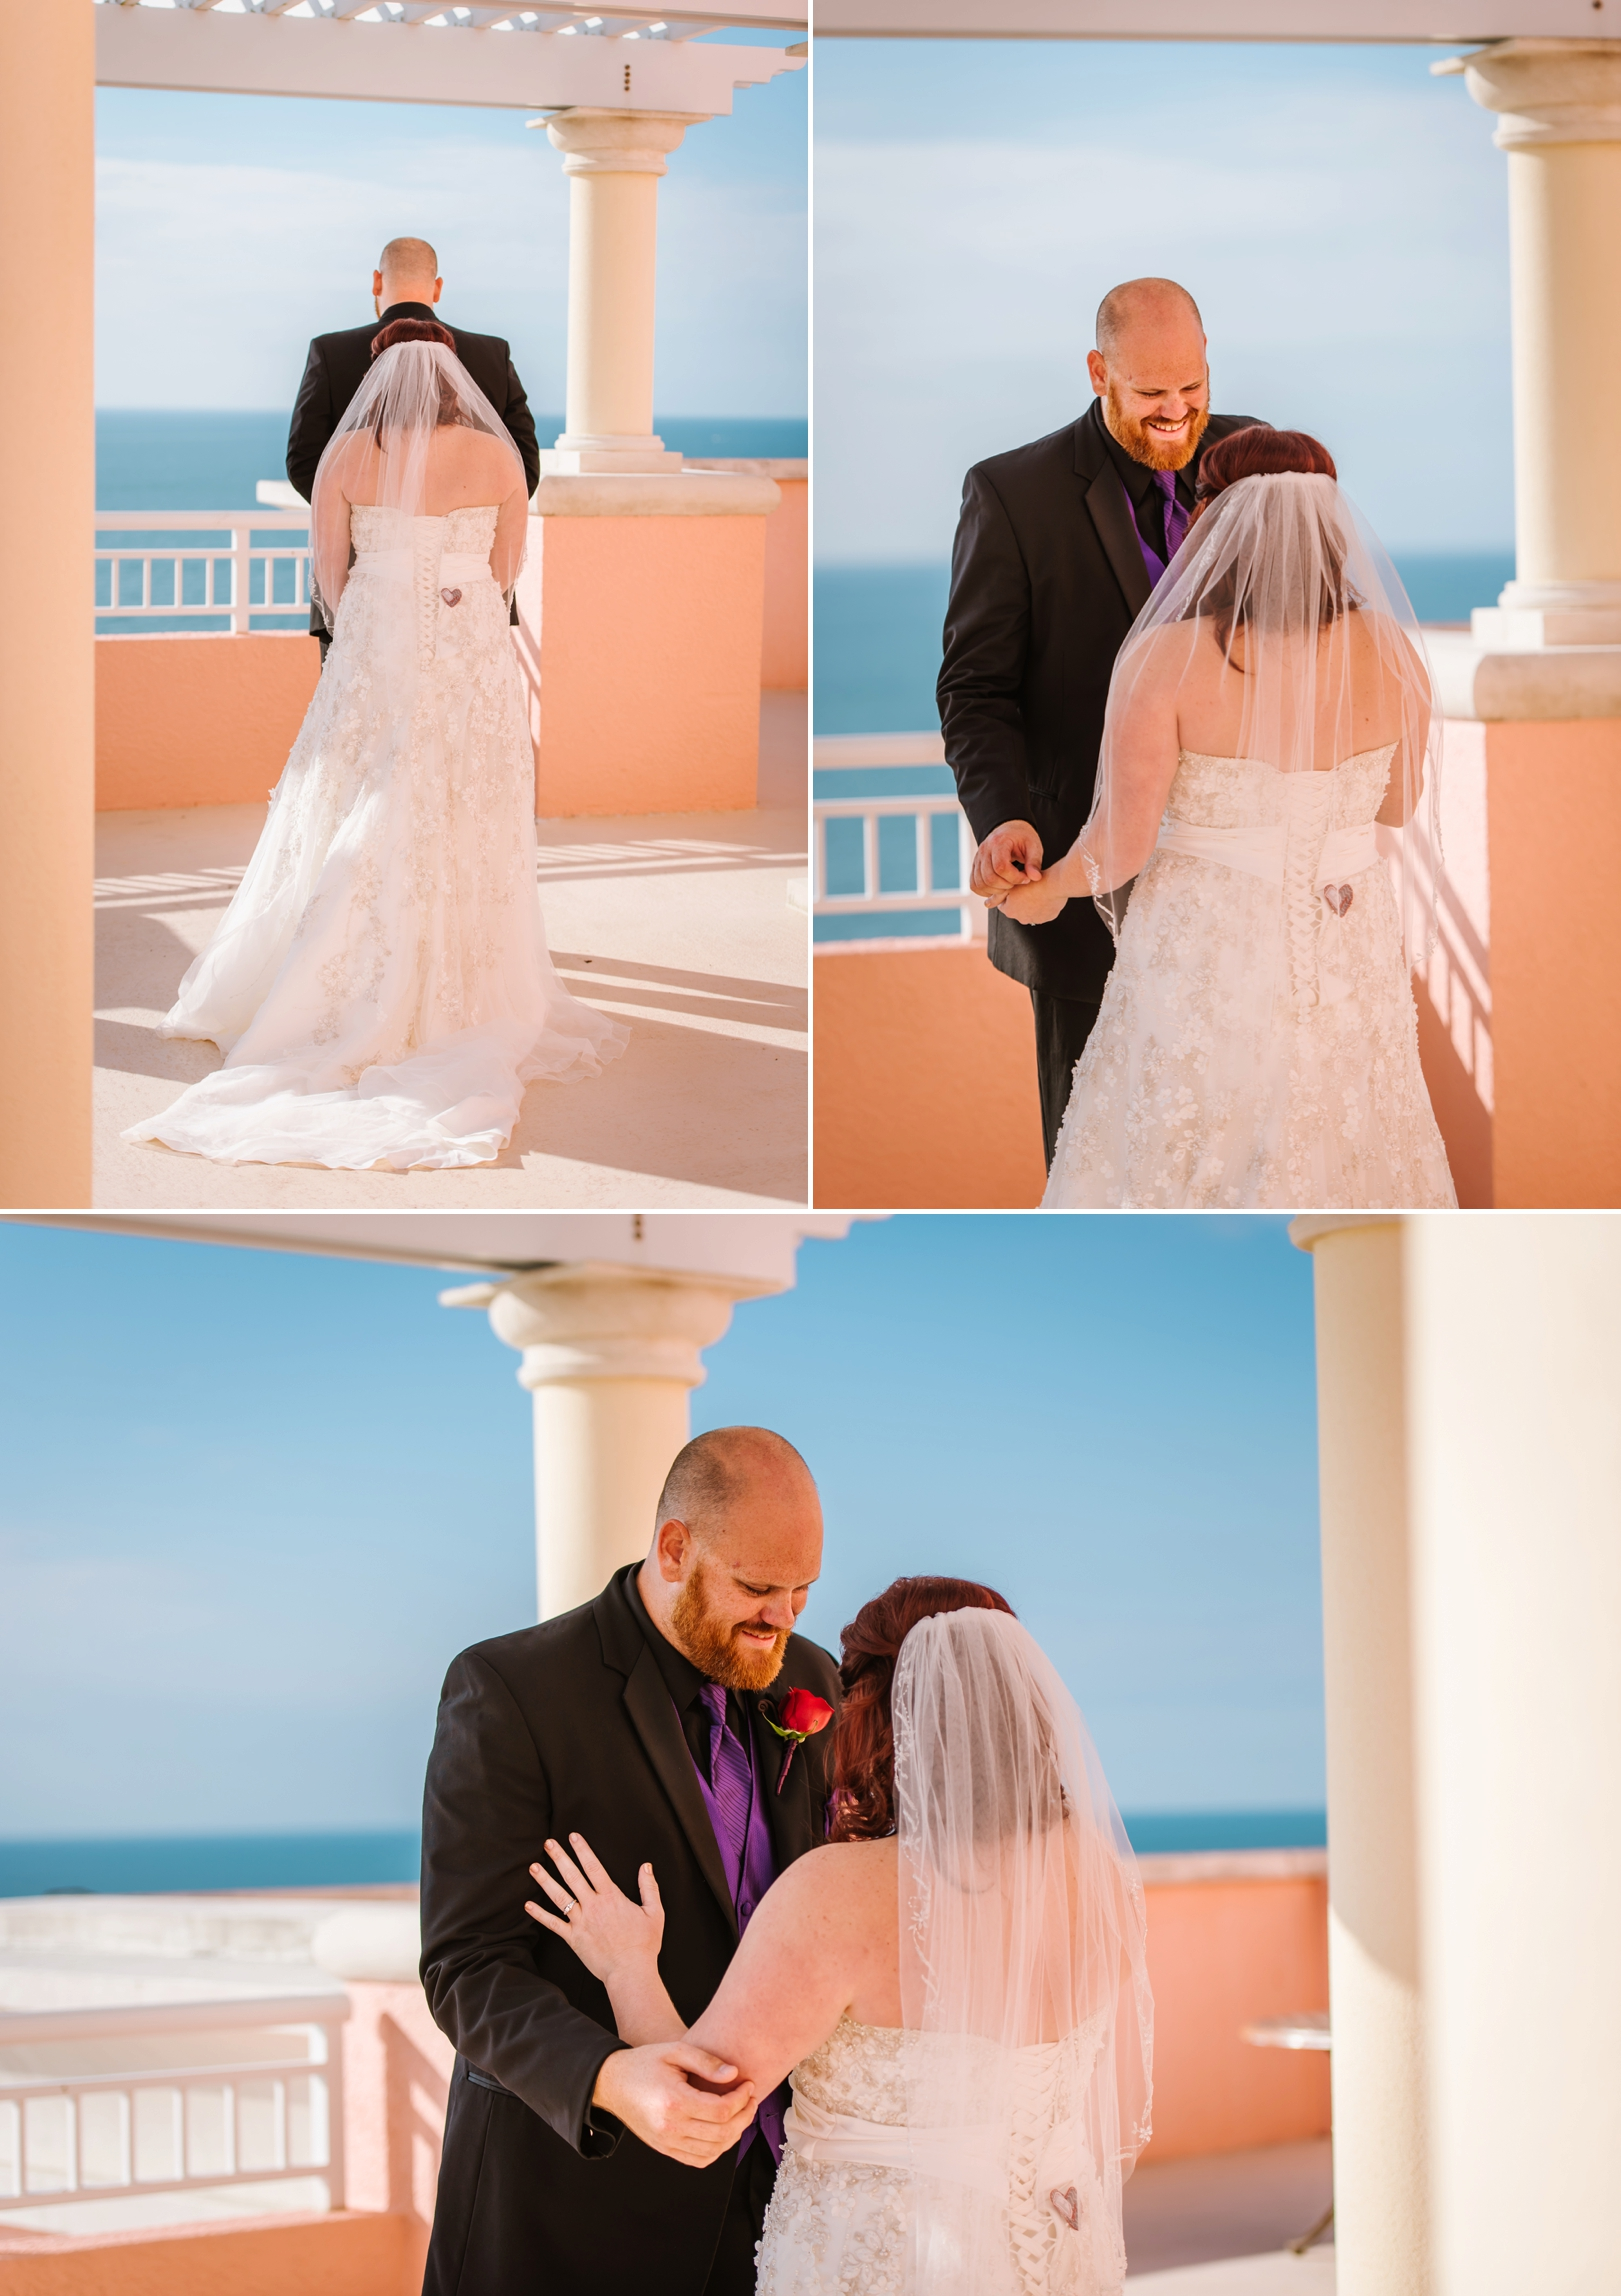 clearwater-beach-hyatt-masquerade-ballroom-themed-wedding-photograpy_0009.jpg